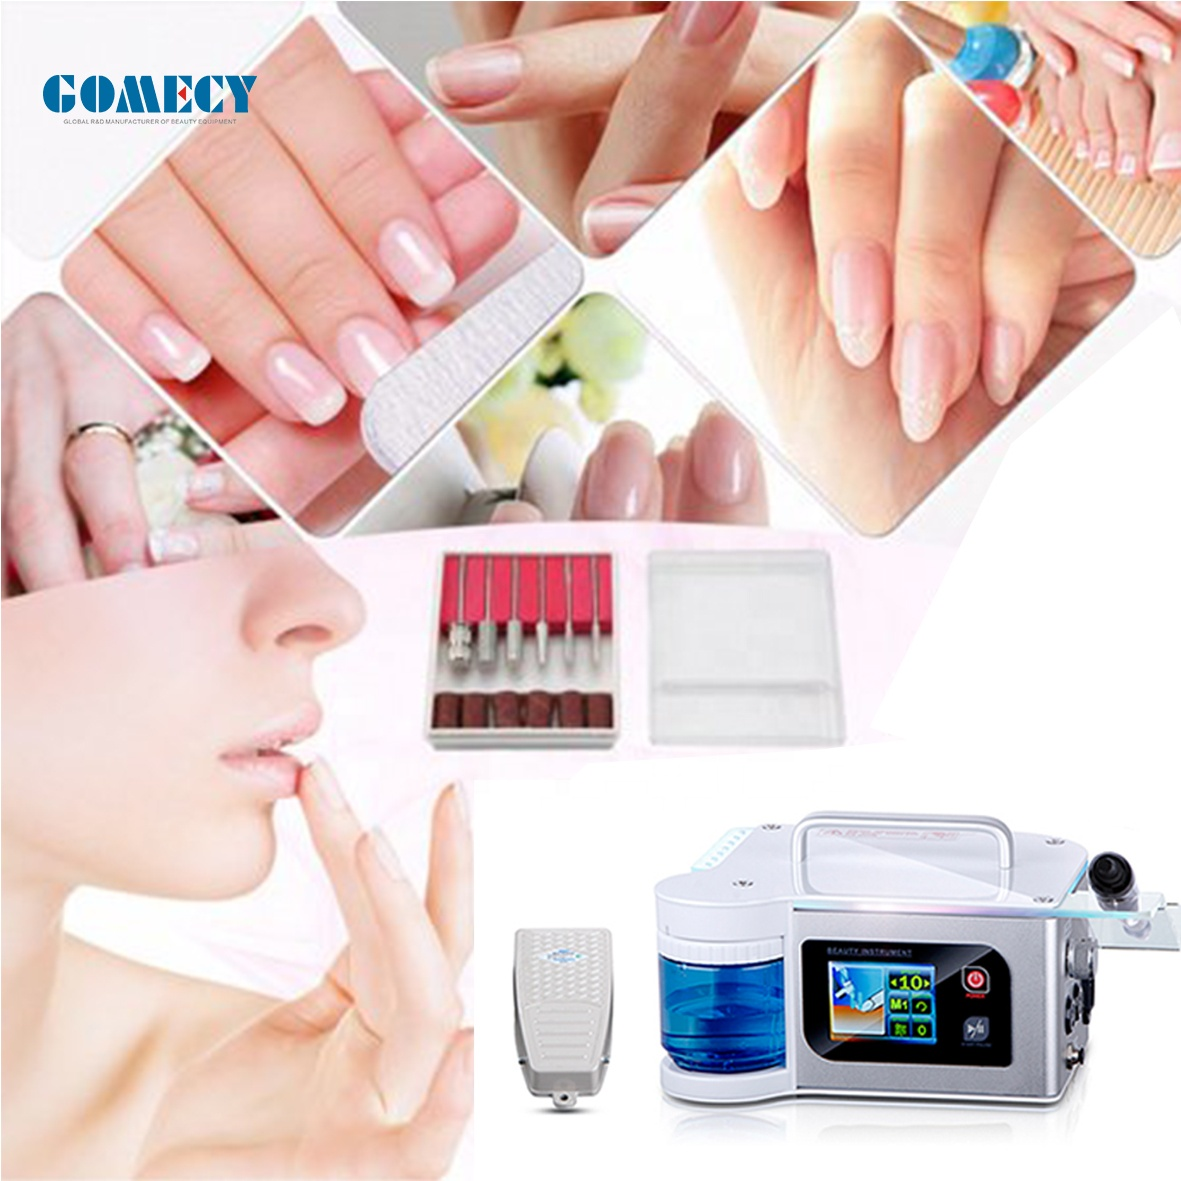 spa device Nail Drill with Water Spray Podiatry Nail Drill Electric Nail drill Pedicure Motor